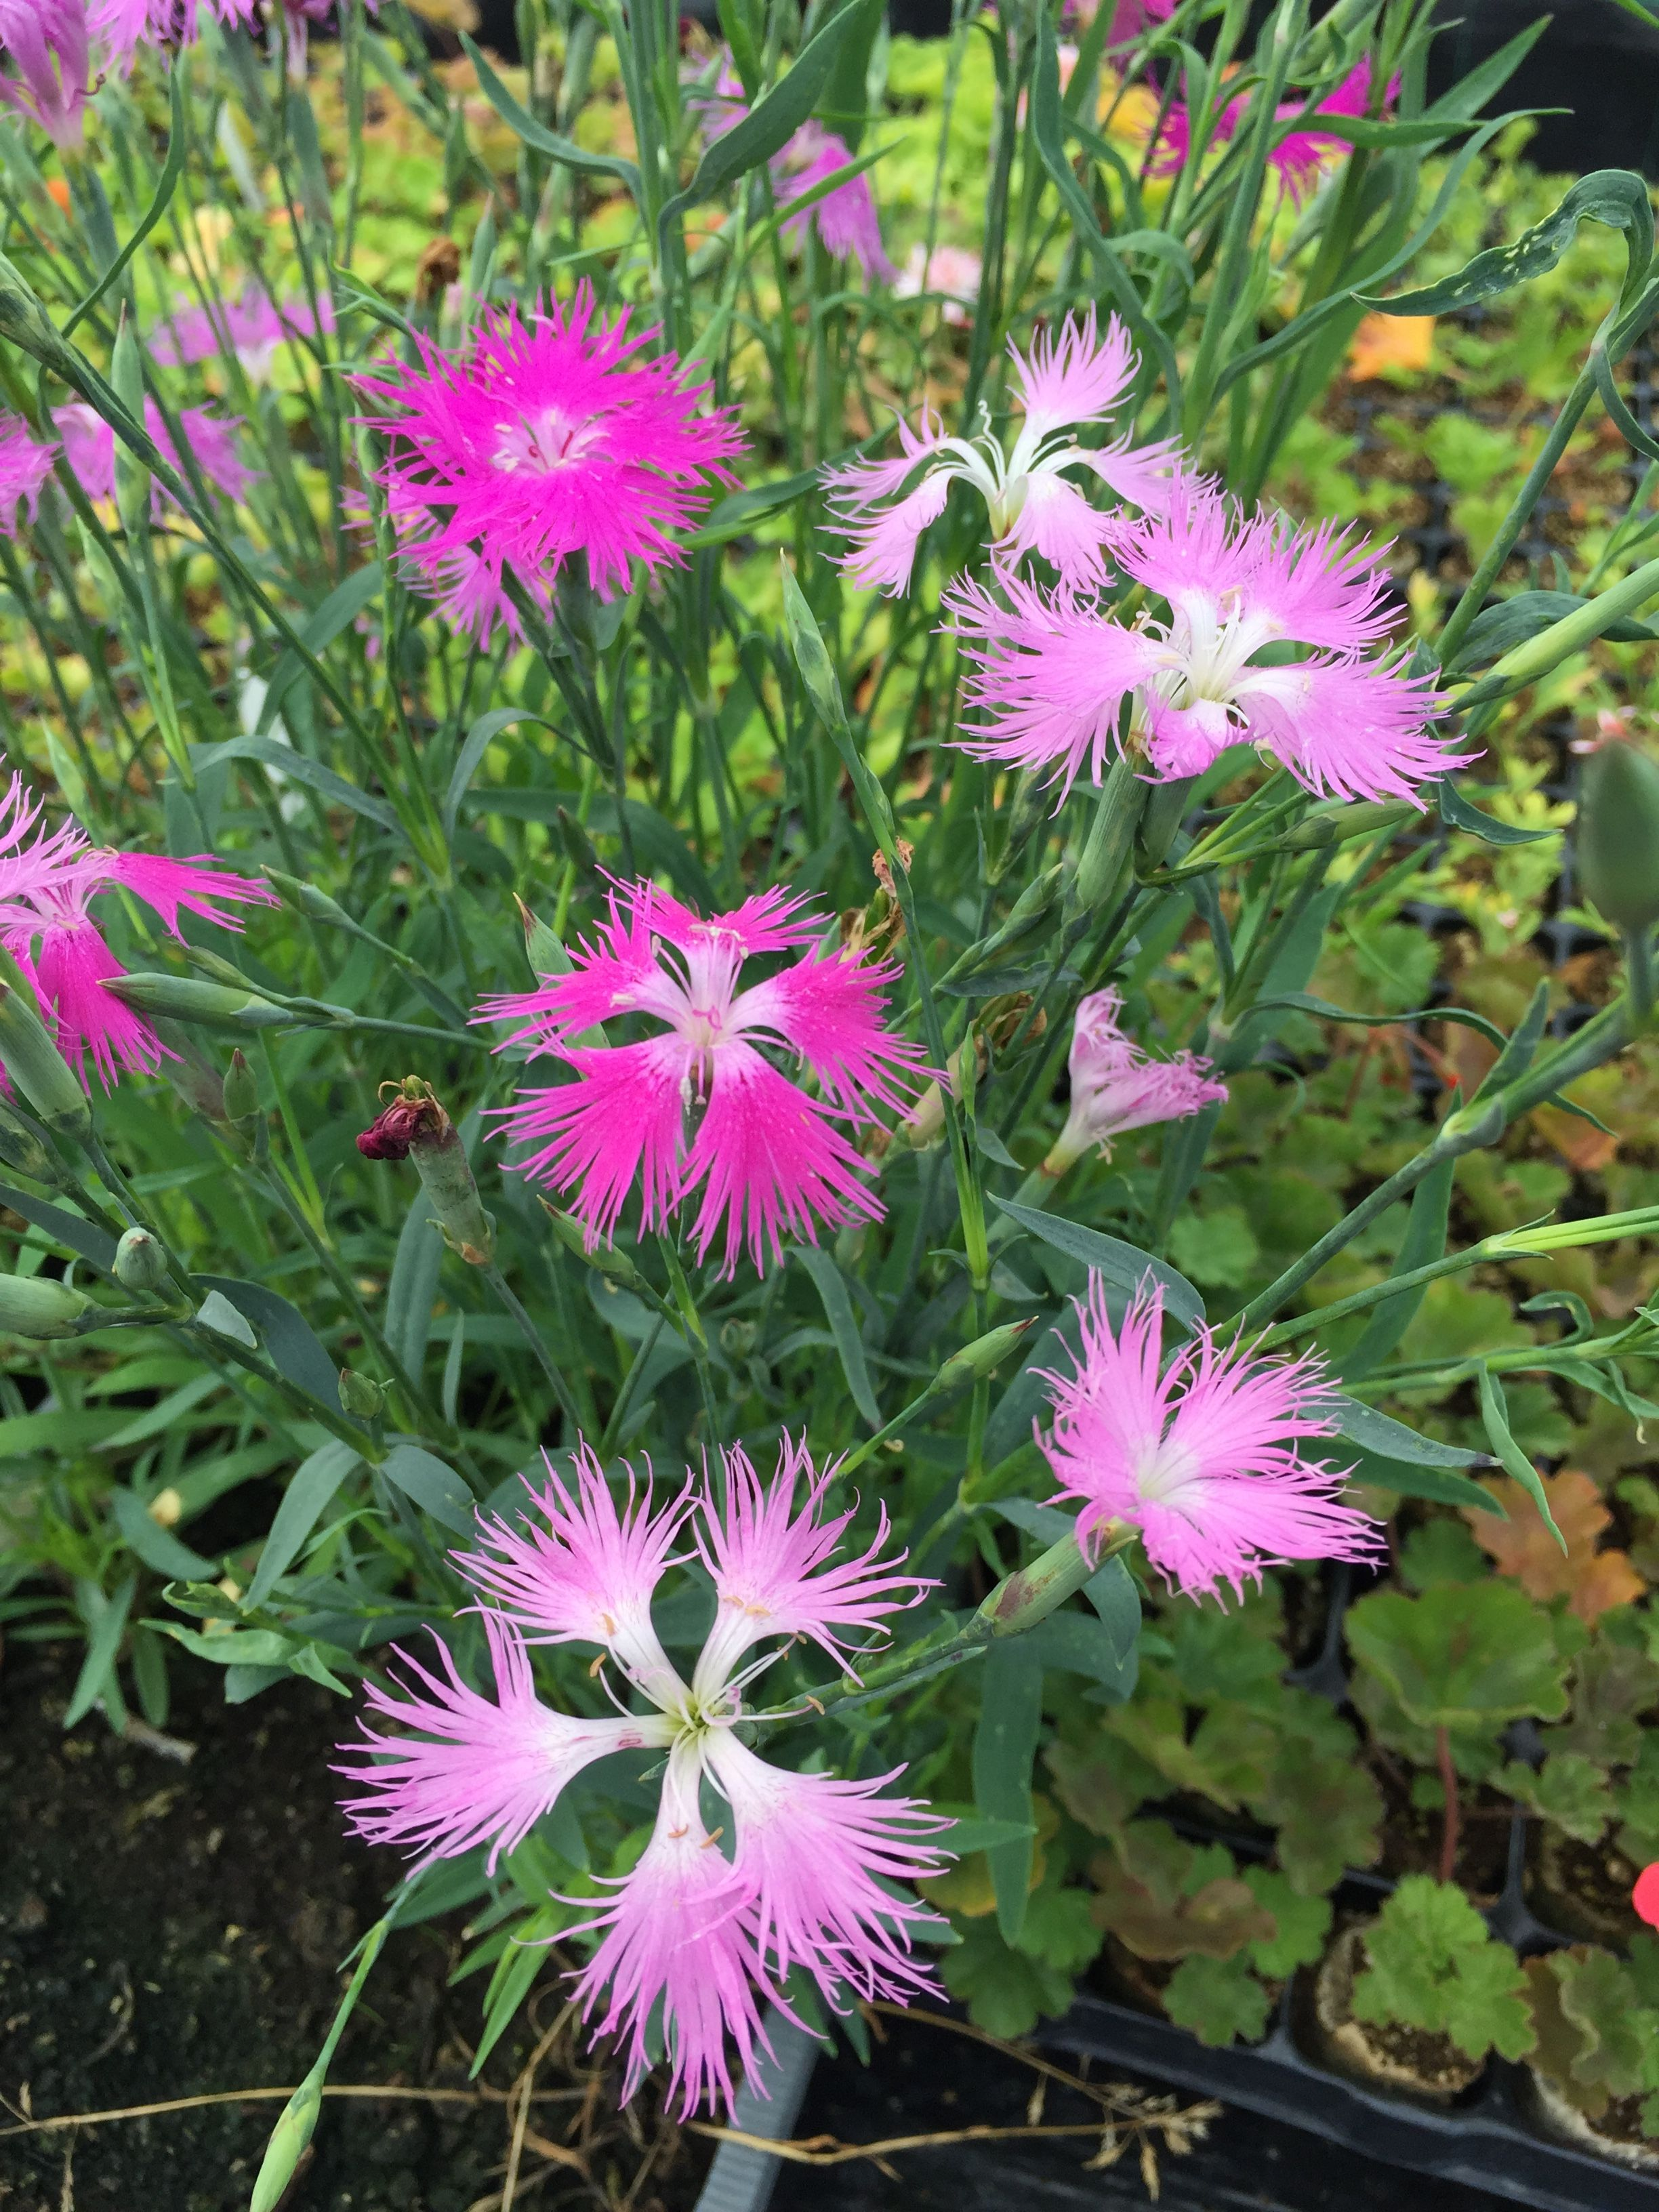 Dianthus Superbus Has A Lovely Feathery Flower That Are Highly